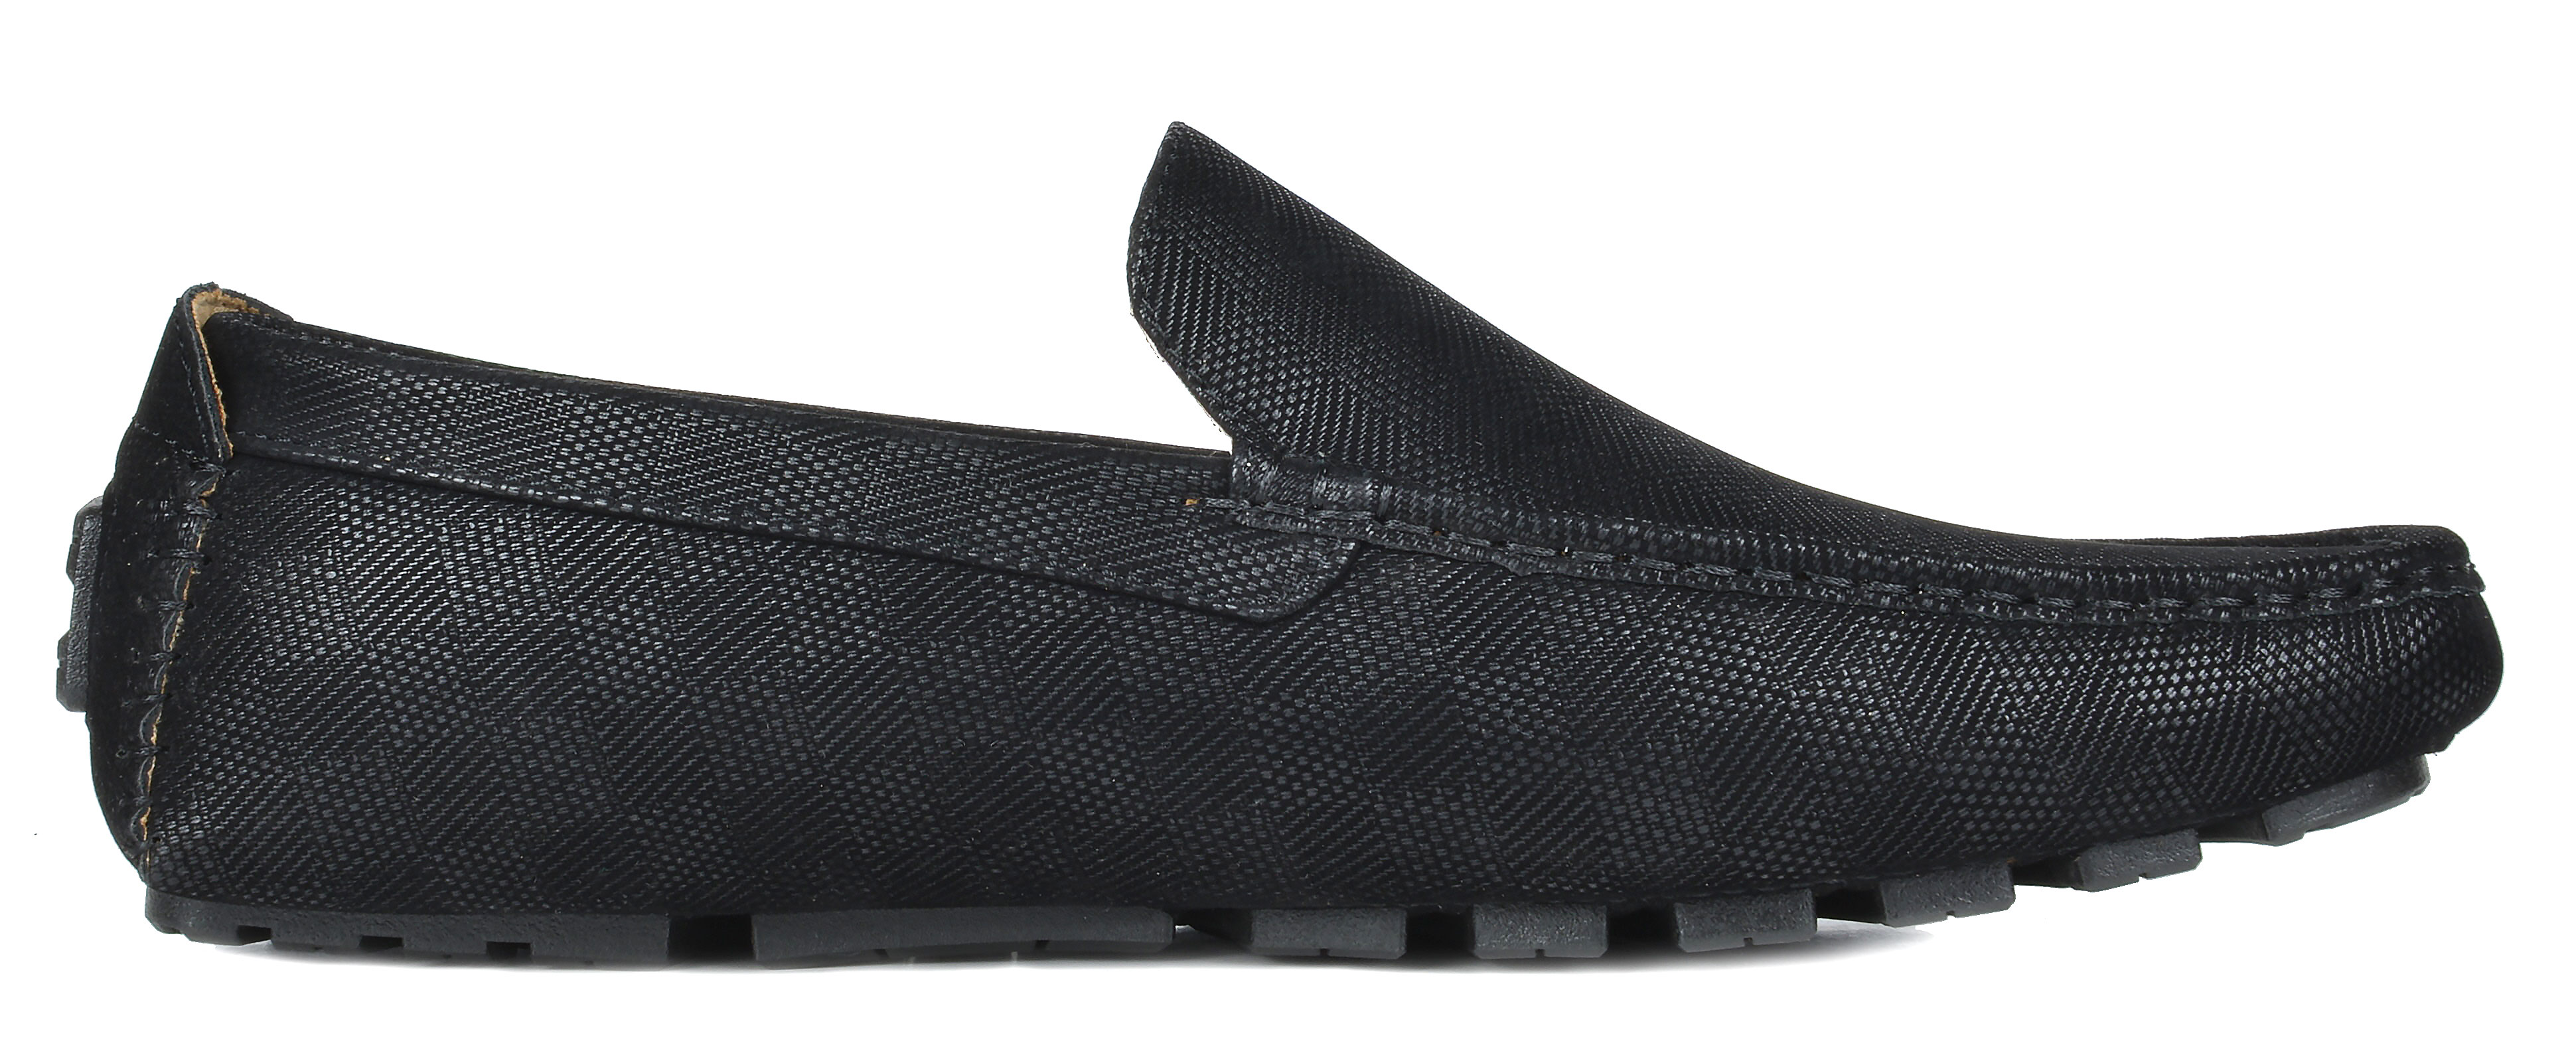 Bruno-Marc-Men-039-s-New-Classic-Fashion-Slip-on-Driving-Casual-Loafers-Boat-Shoes thumbnail 110